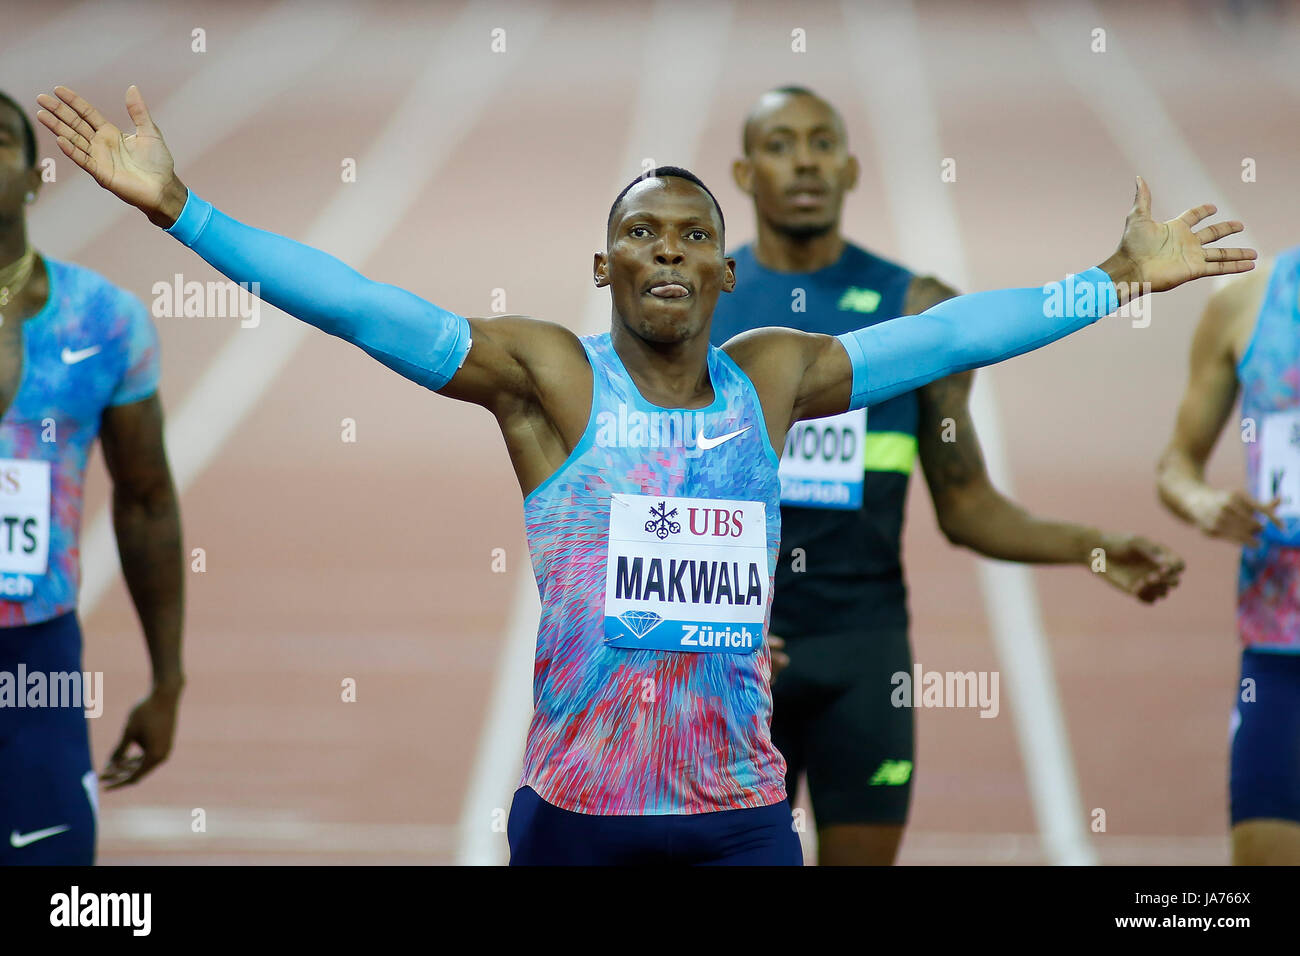 Zurich, Switzerland. 24th Aug, 2017. Isaac Makwala (front) of Botswana celebrates after the men's 400m final - Stock Image